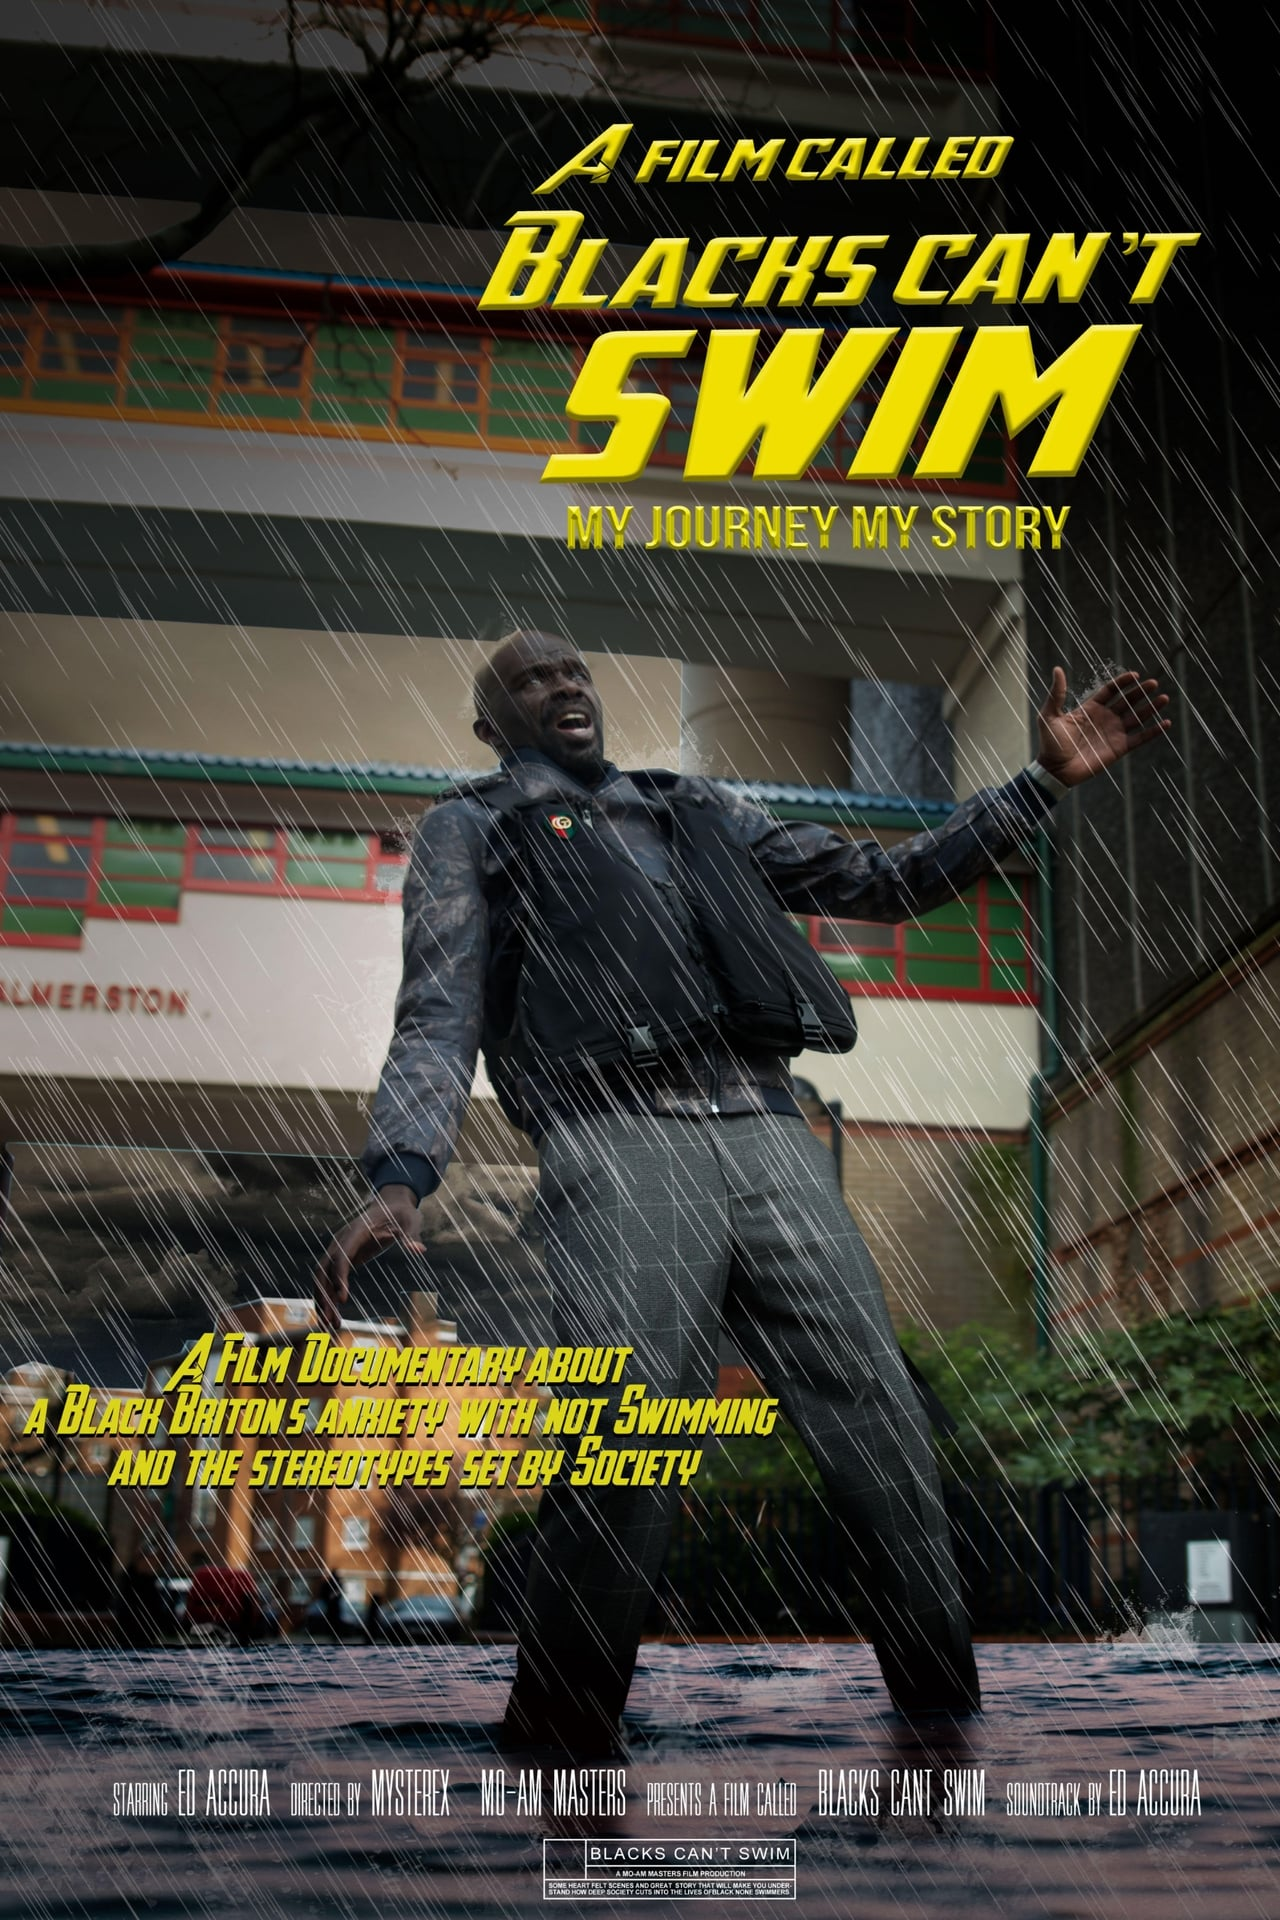 Full Free Watch A Film Called Blacks Can't Swim (My Journey My Story) (2020) Full Length Movies at filmaffinity.megaflixmovies.com